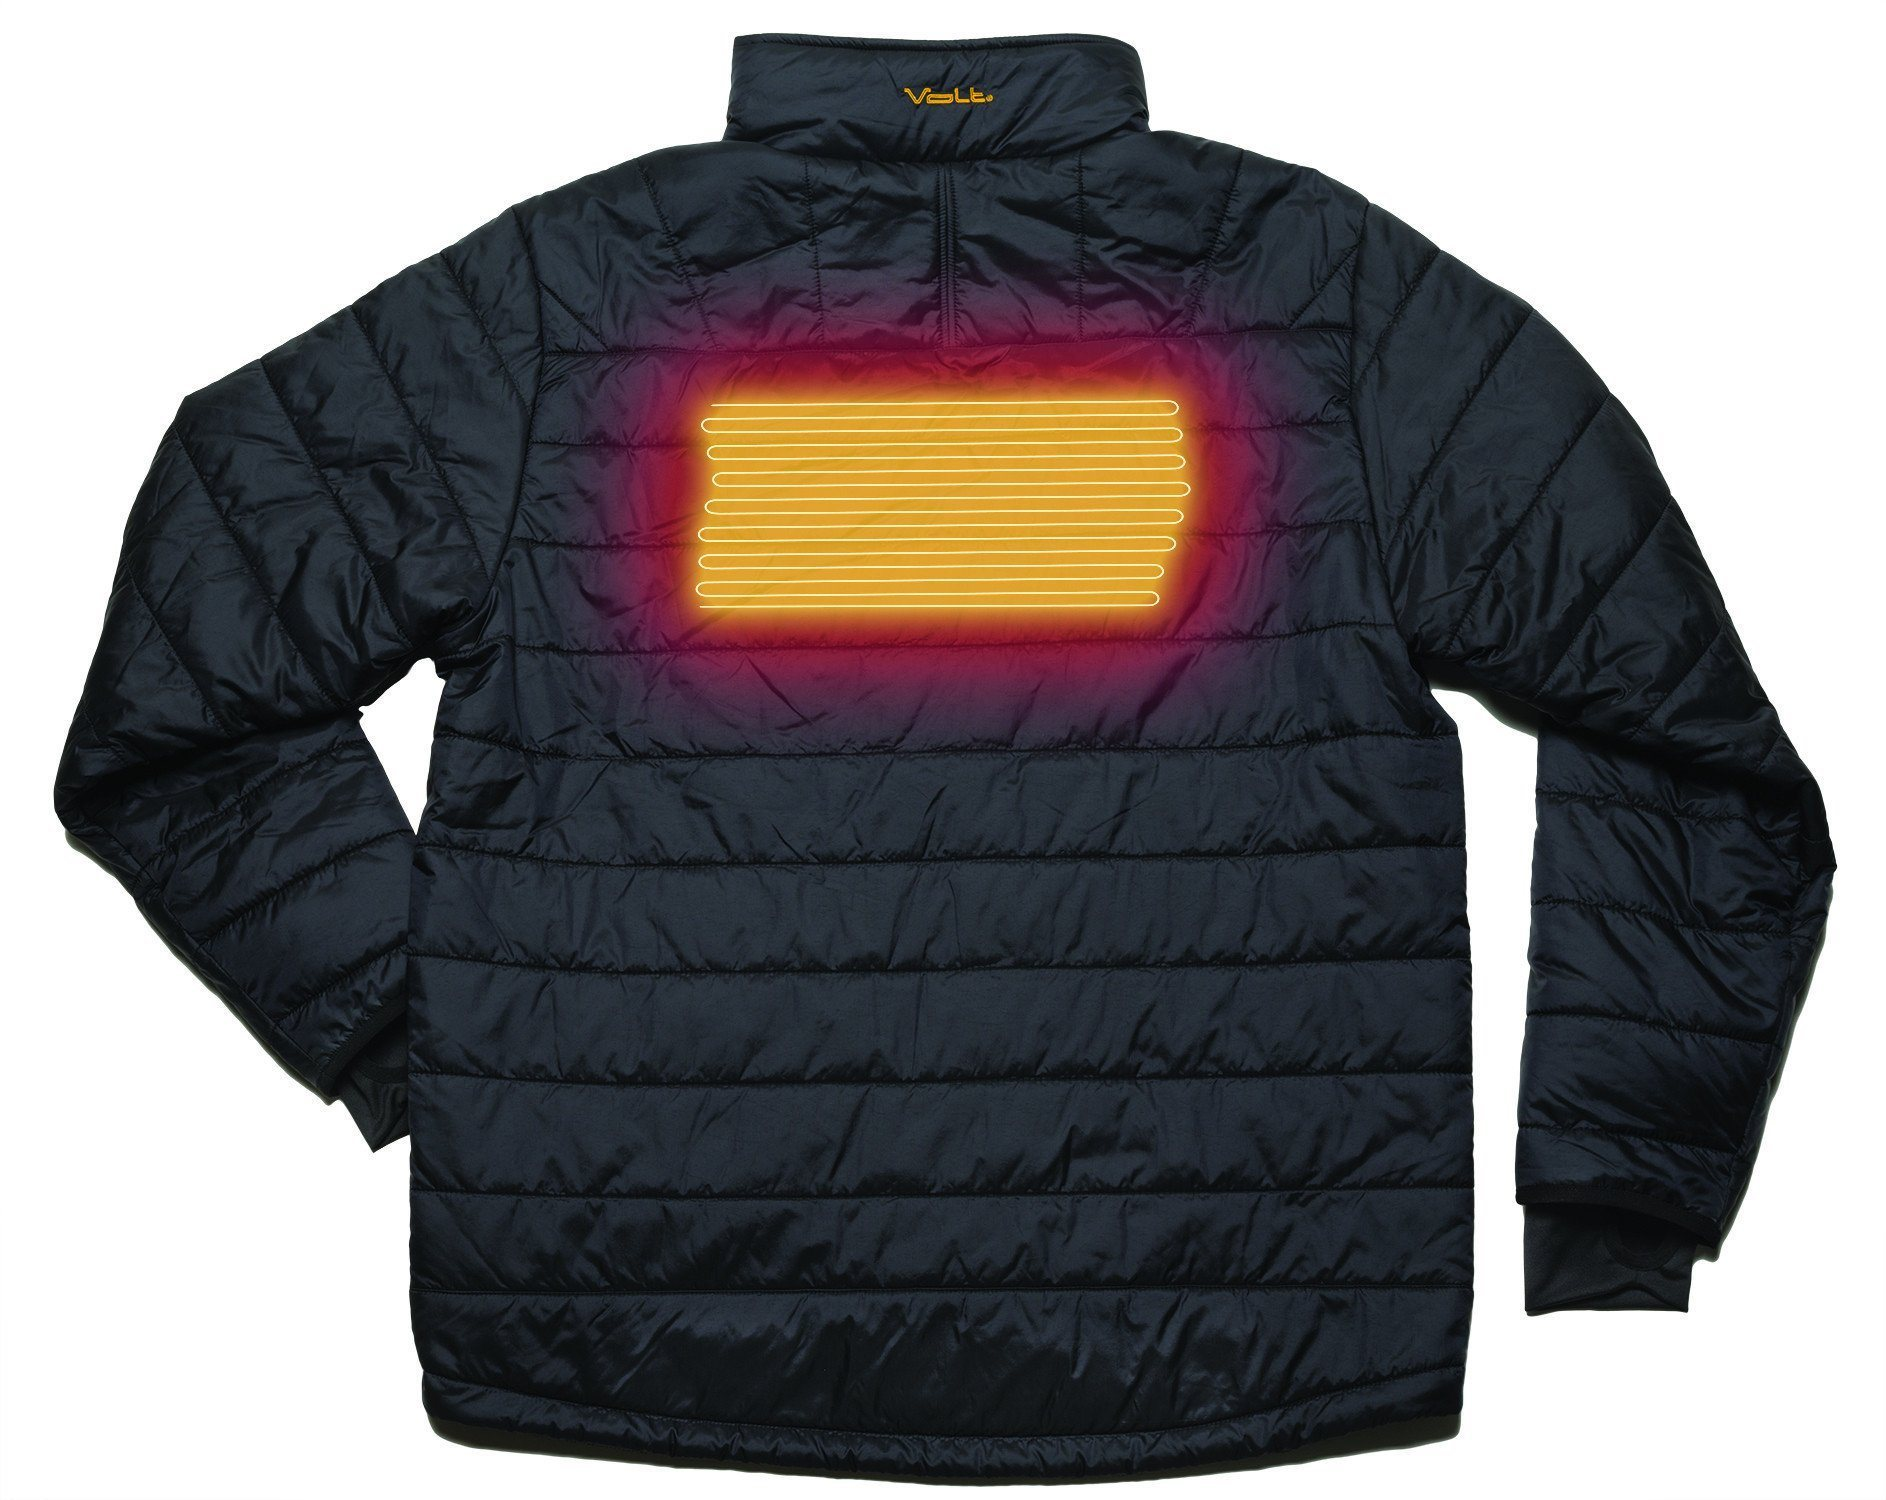 Heated Jackets | Men's and Women's Heated Jacket Online ...